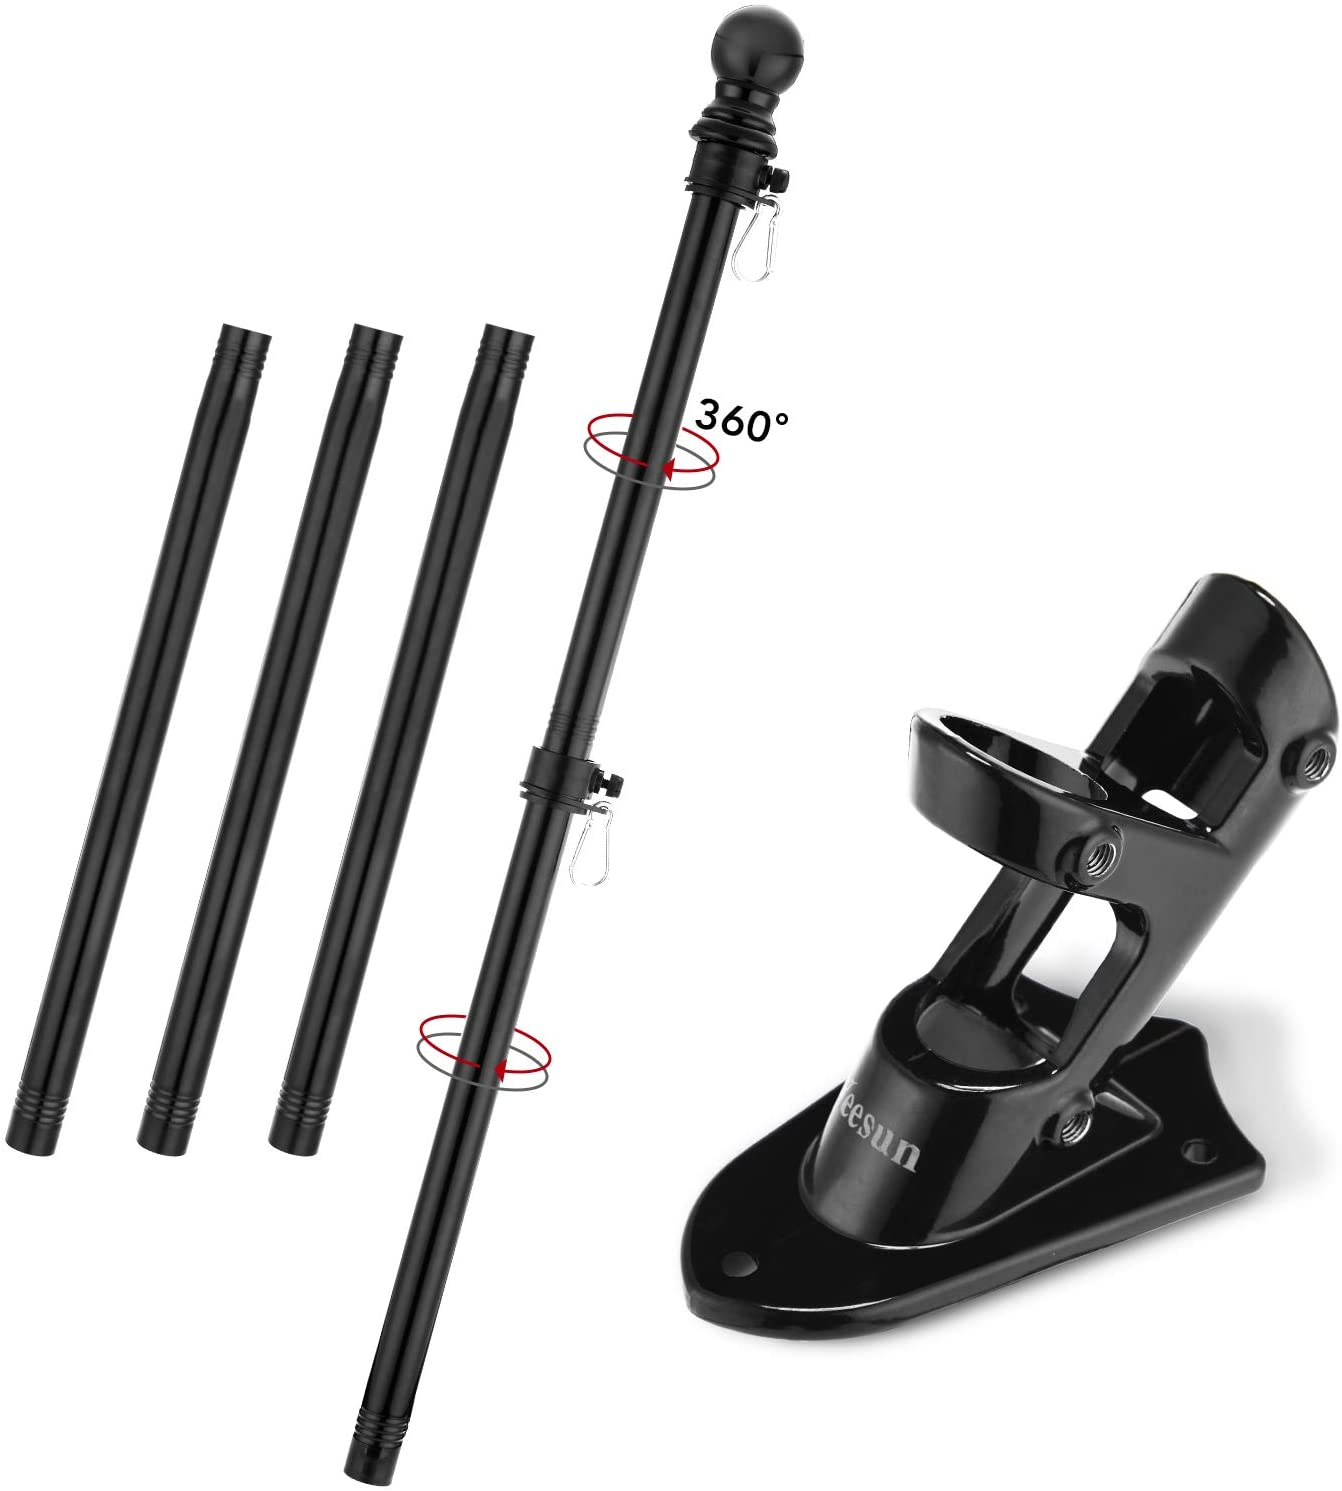 Yeesun Flag Pole,6FT American Flag Pole & Bracket-Flagpoles for 3 x 5 Flags Holder for House Porch & Outdoor,Tangle Free and Wall Mount Flag Pole Kit (Without Flag,Black)